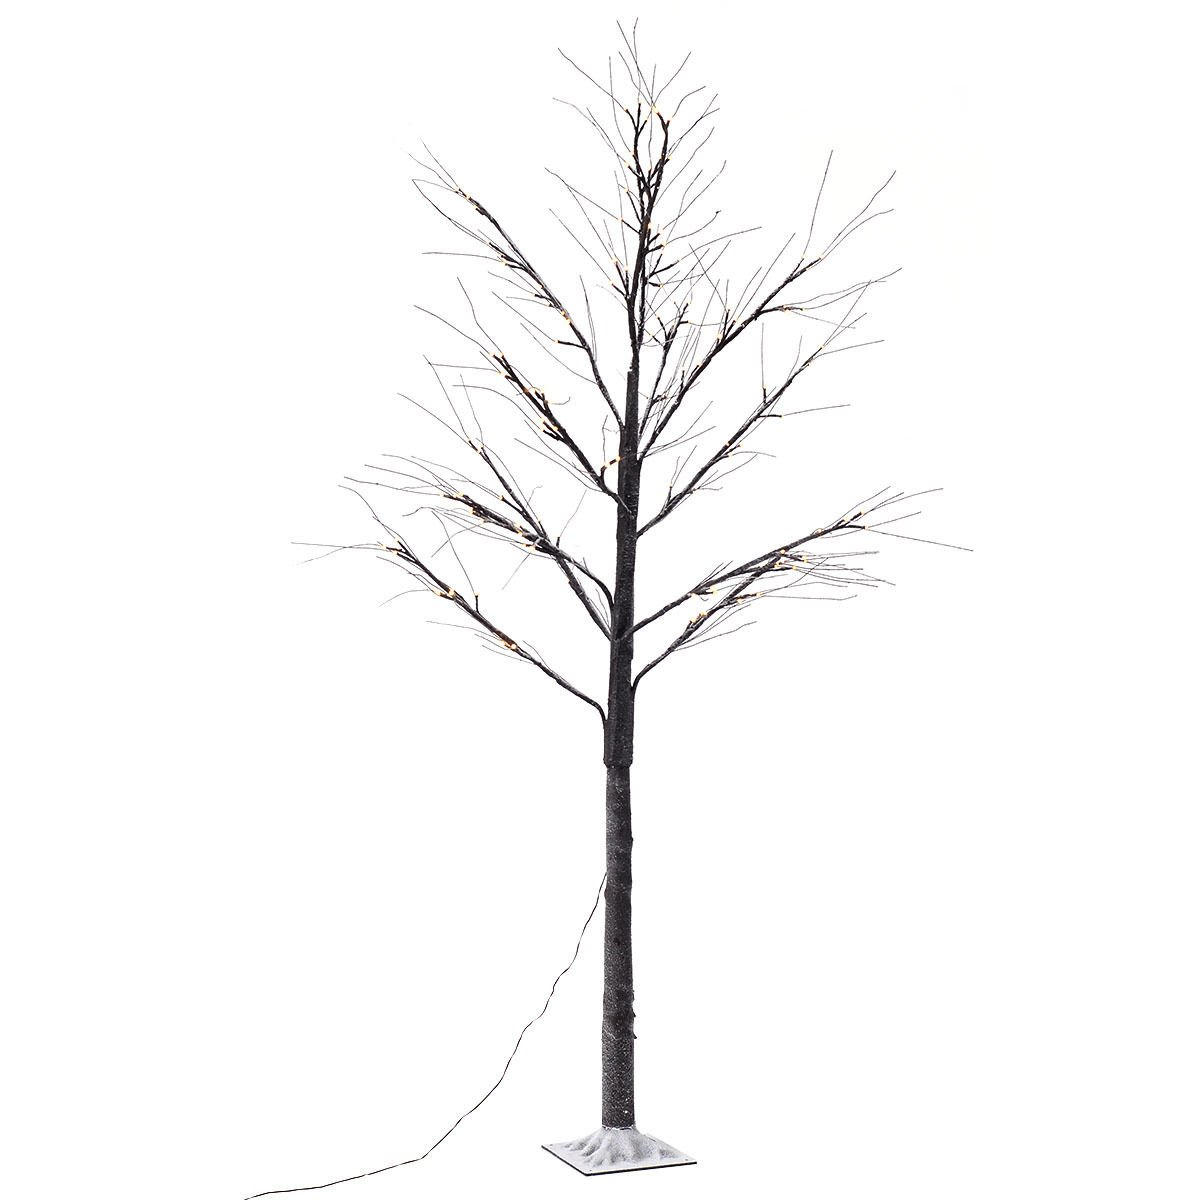 Furinho Bush - 8FT 144LED Christmas Xmas Brown Birch Snow Tree LED Light Warm Decorative Festival Party YRS 1158 by Furinho Bush